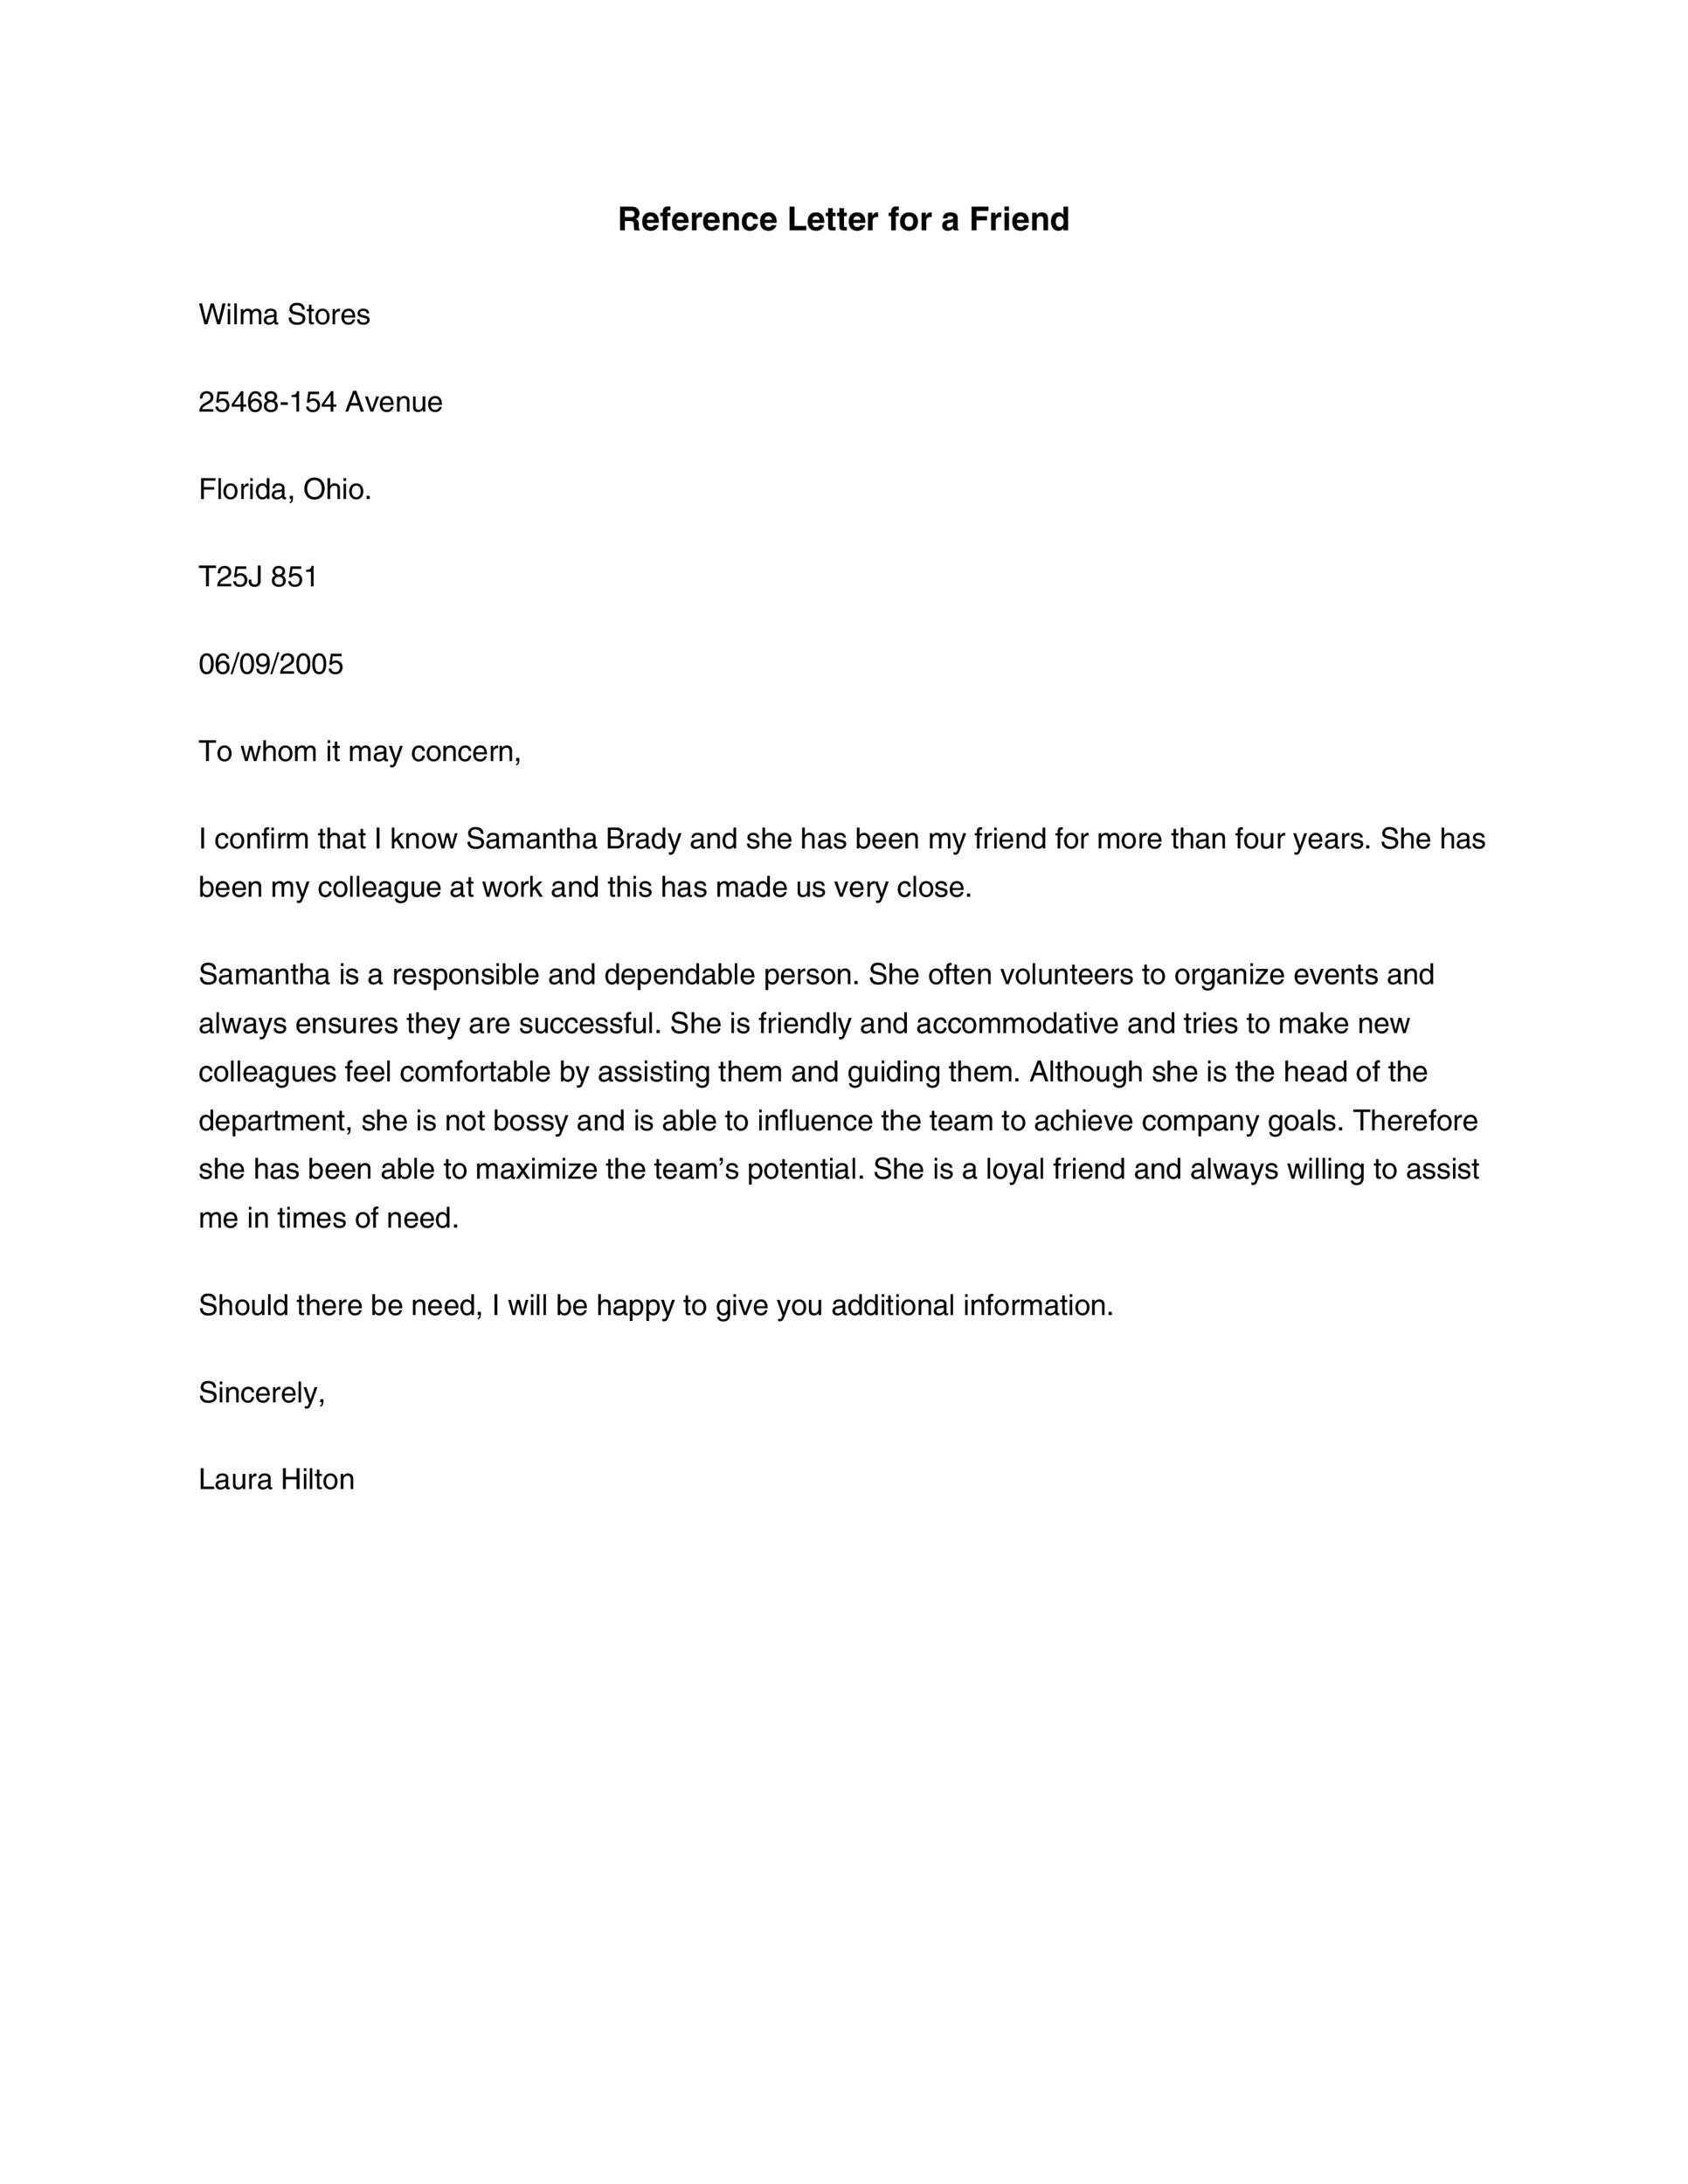 10 Best Letter Of Recommendation Writing Services